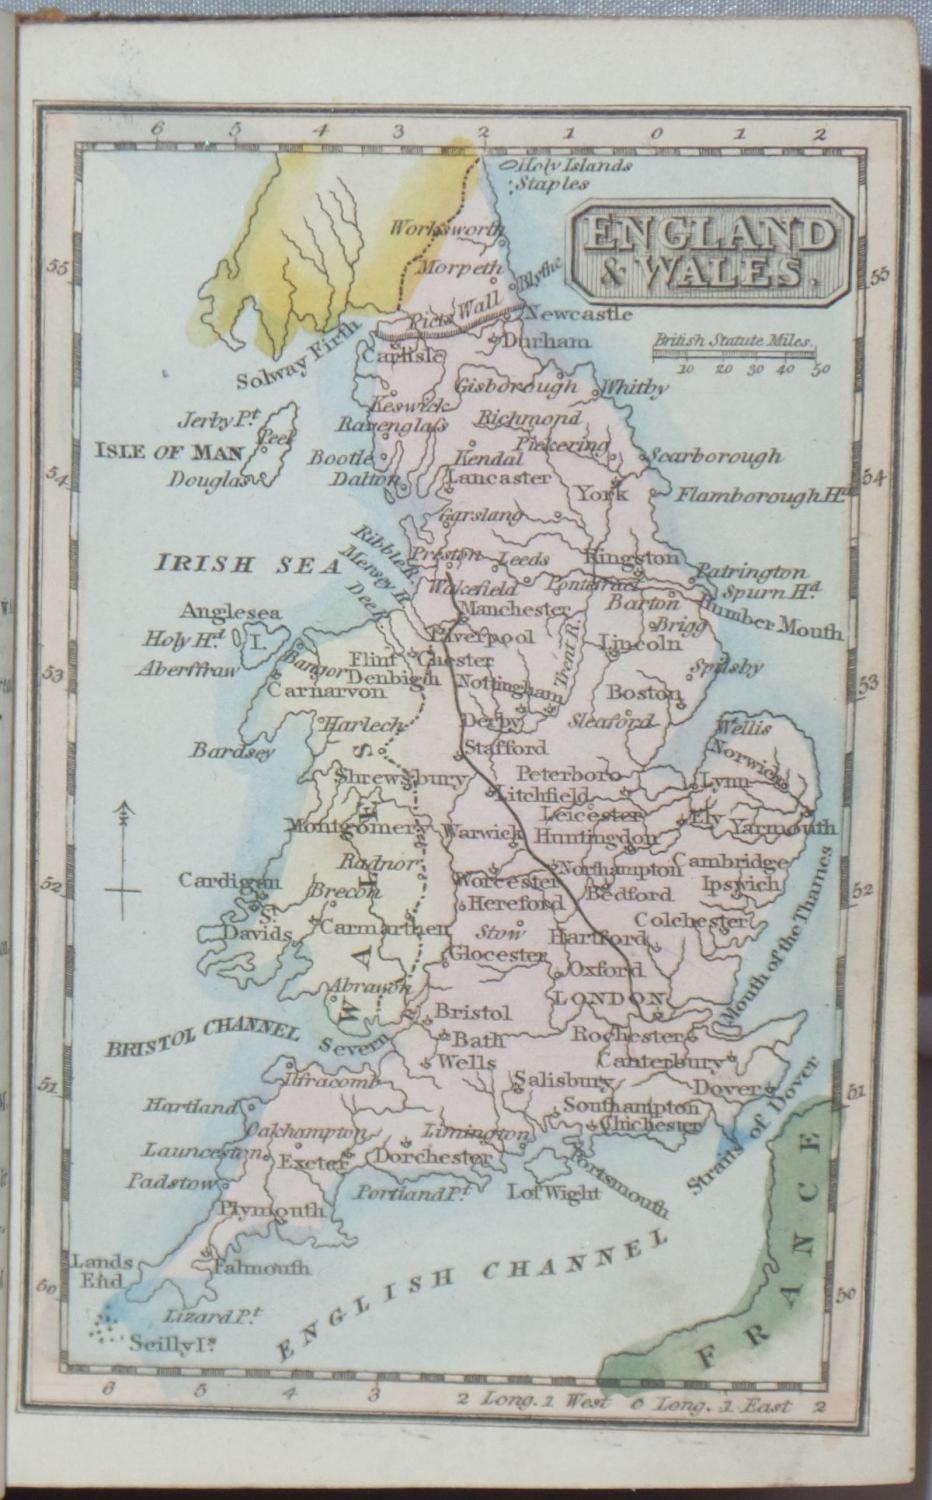 Litchfield By The Sea Map : litchfield, Panorama:, Traveller's, Instructive, Guide;, Through, England, Wales, Exhibiting, Direct, Principal, Cross, Roads,, Cities,, Towns,, Villages,, Parks,, Canals,, Accompanied, Description, County